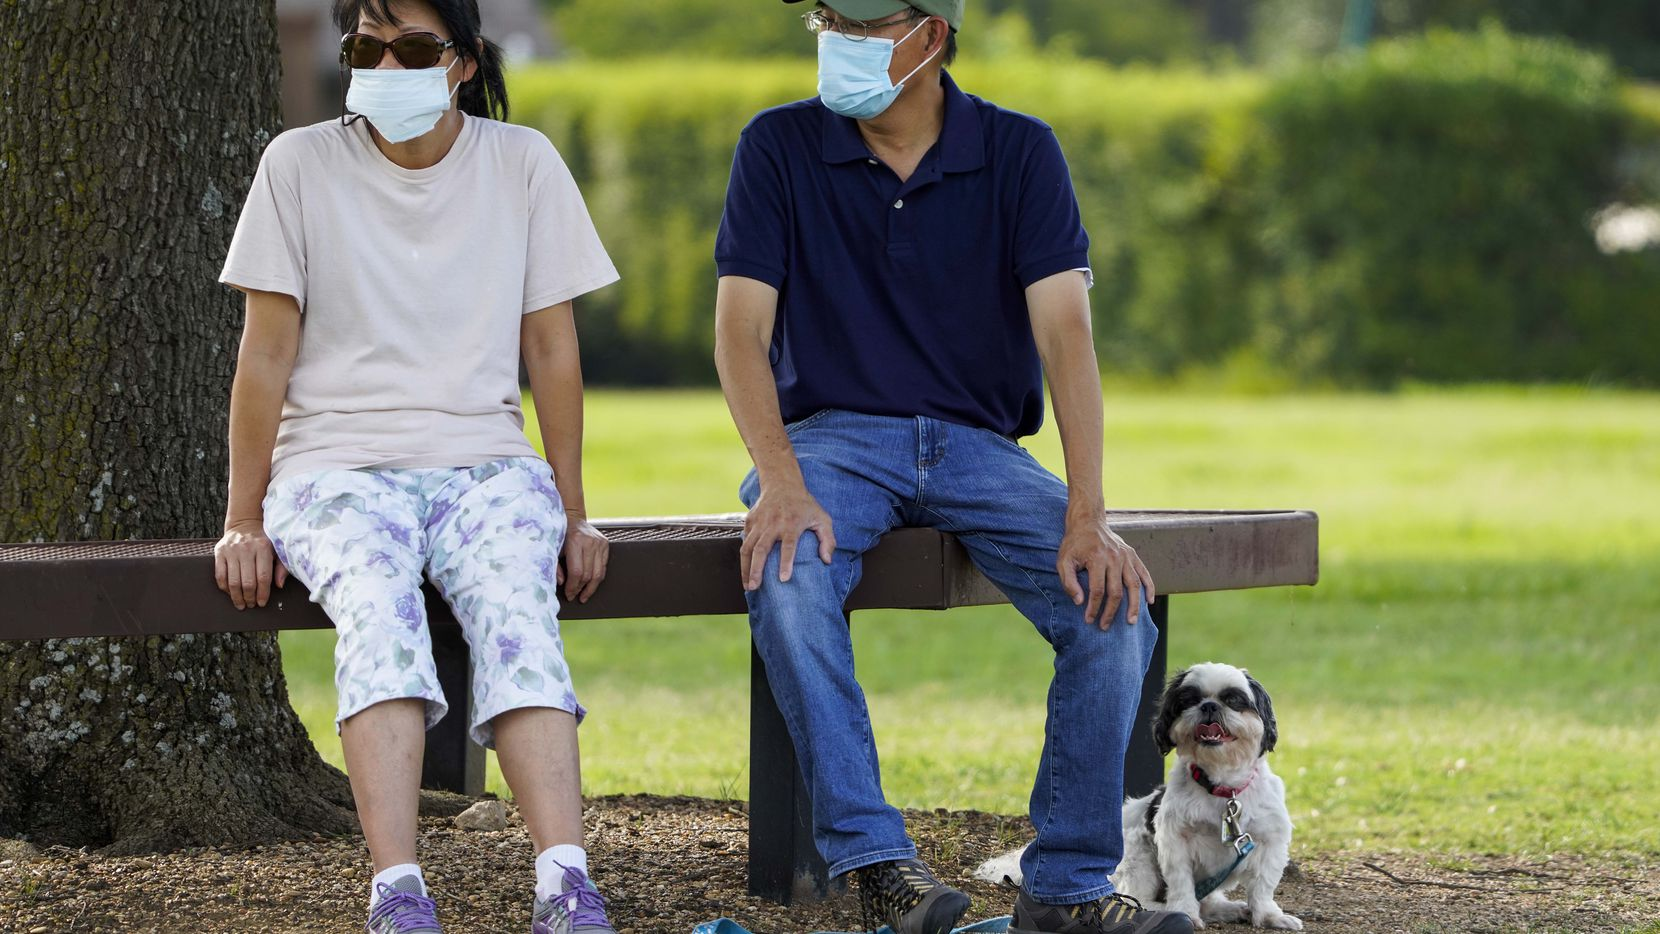 Jeff and Raynette Ho wear face masks as they sit with their dog at Custer Park on Thursday, July 2, 2020, in Richardson, Texas. Gov. Greg Abbott ordered Texas statewide must wear face coverings in public beginning July 3 at noon as cases of the coronavirus surge. (Smiley N. Pool/The Dallas Morning News)